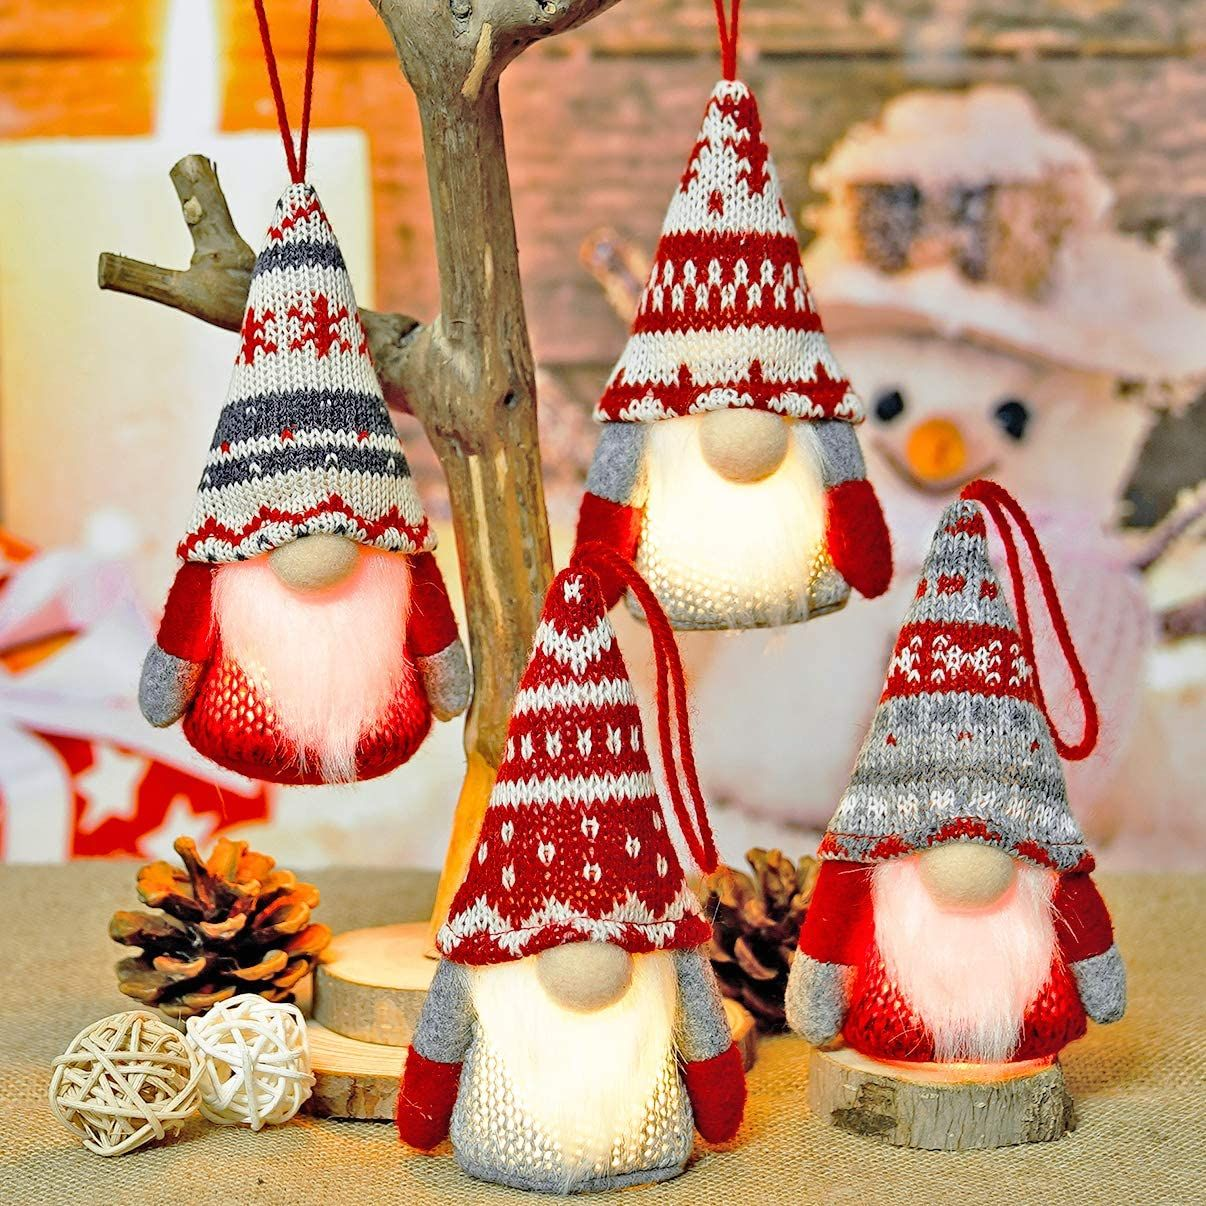 Handmade Gnome Christmas Ornaments Set Of 4 Christmas Ornament Sets Christmas Decorations Tree Christmas Decorationg